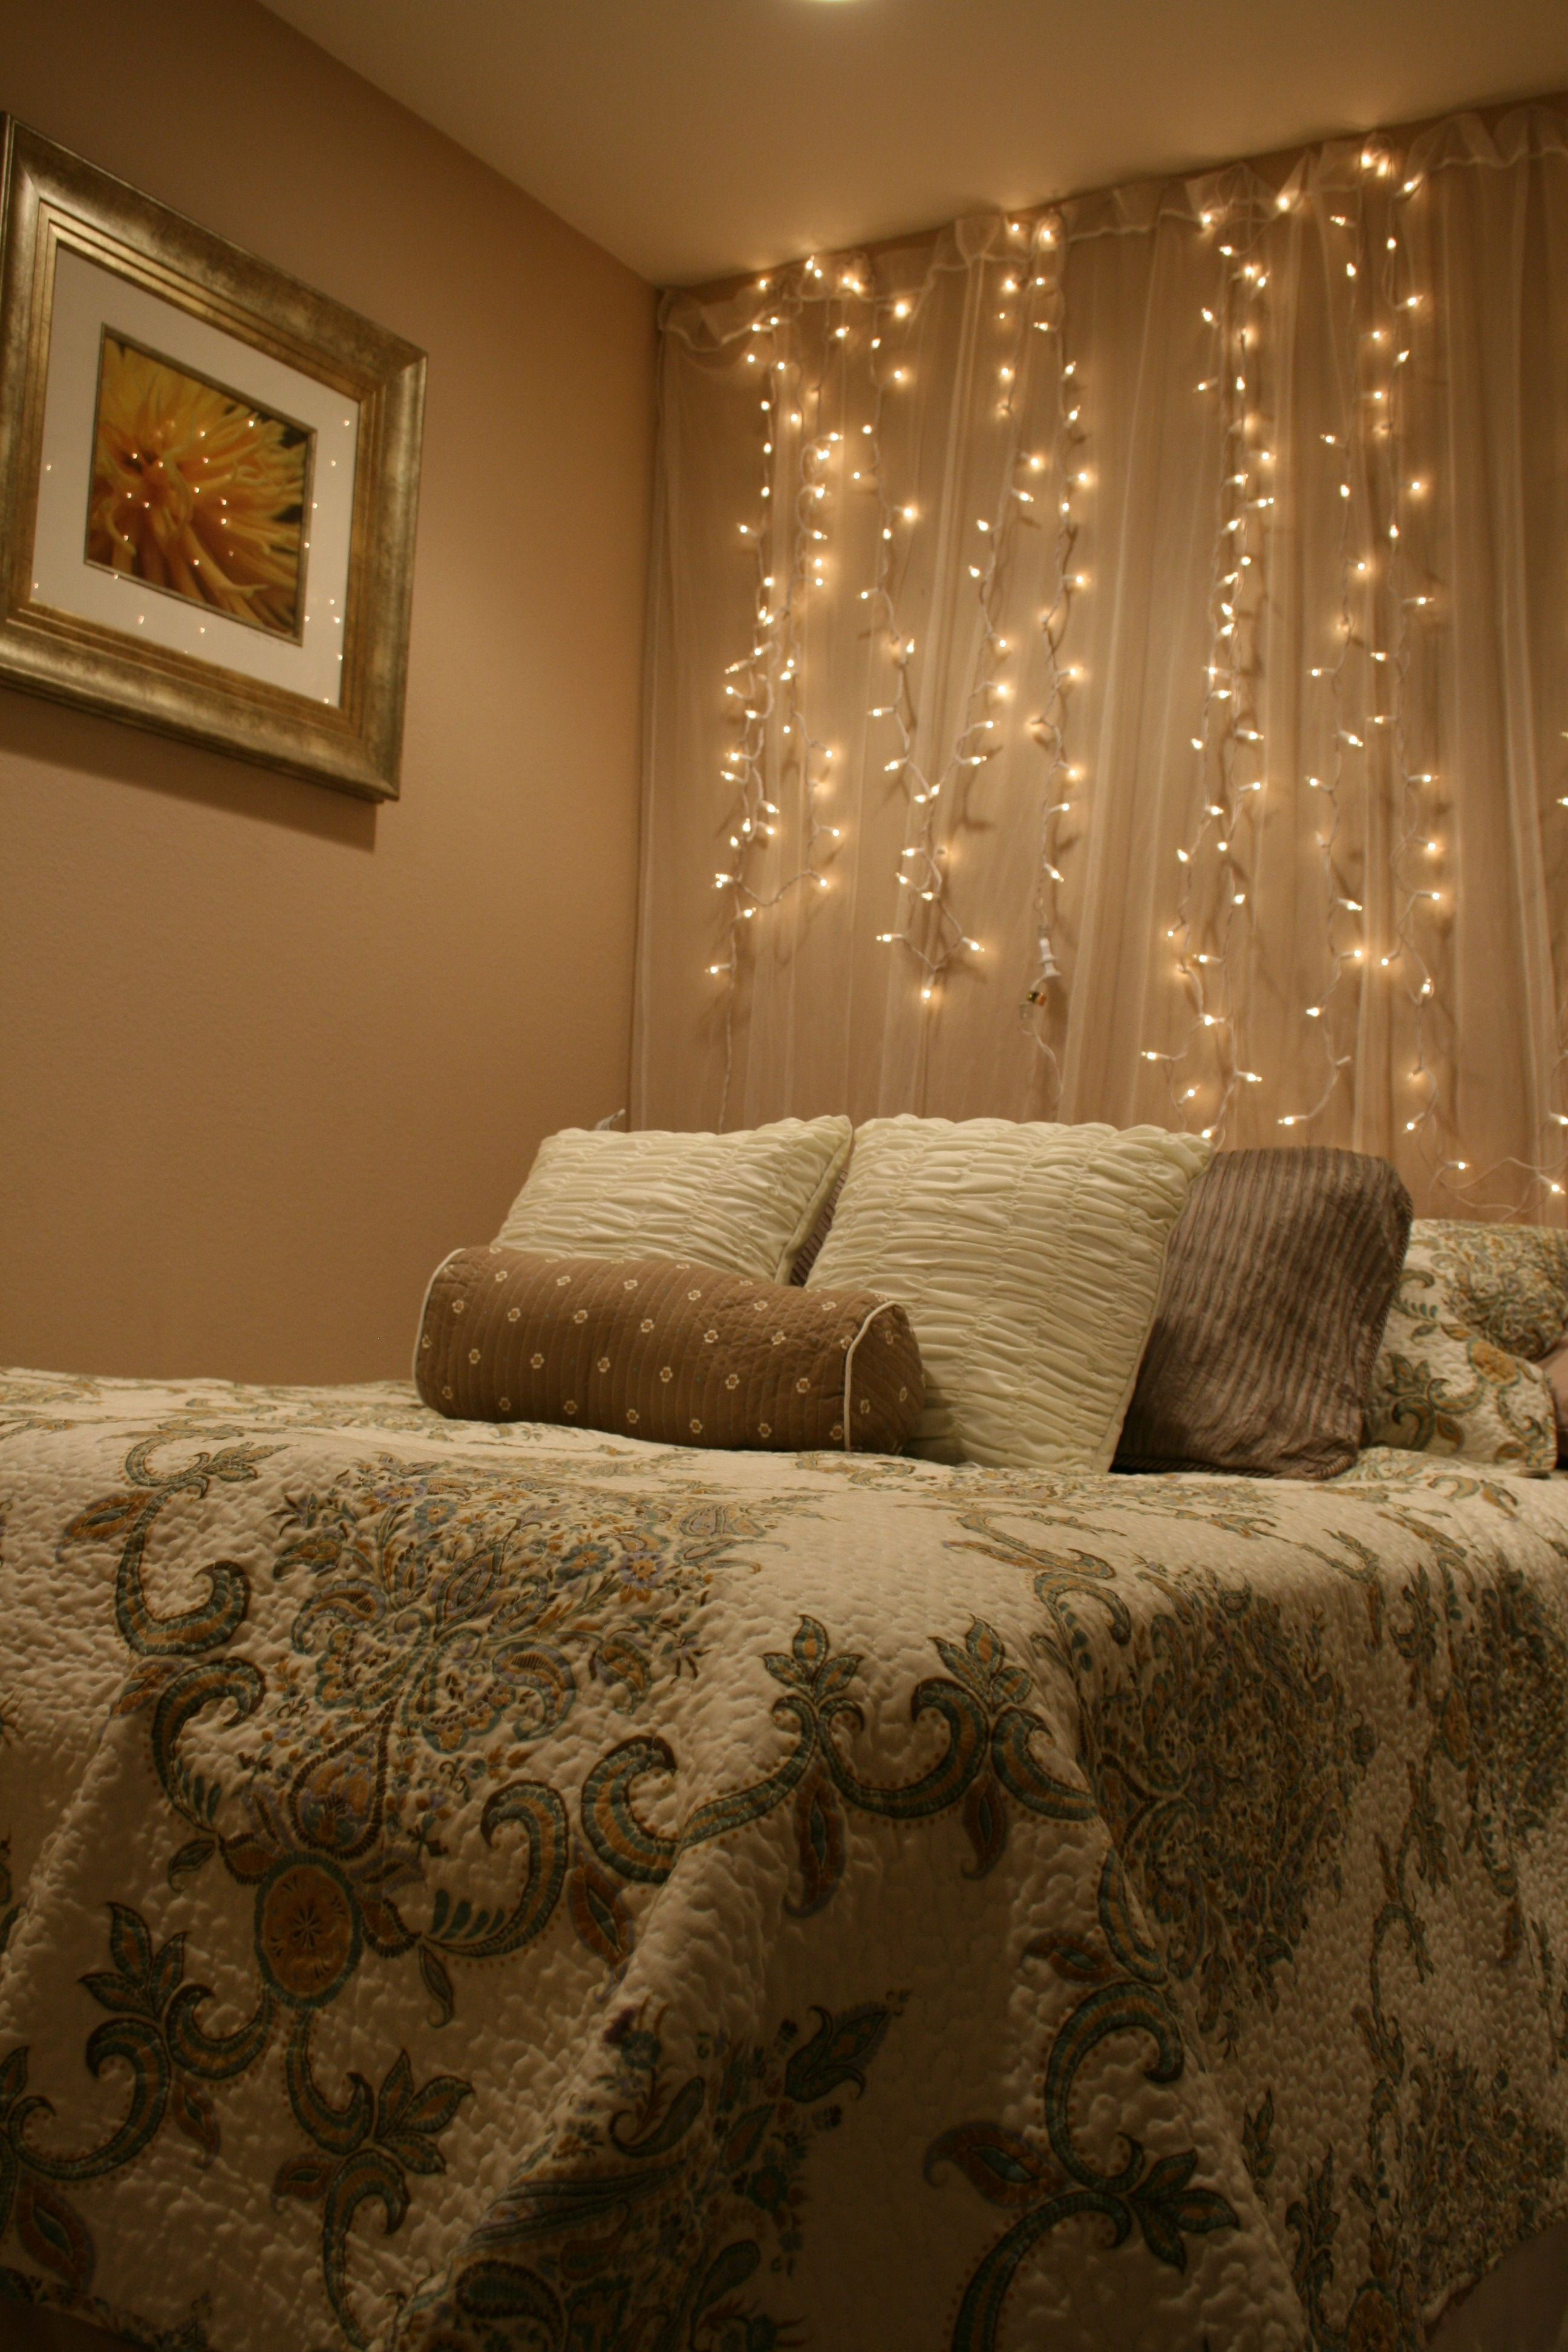 White Lights And Tulle Hung As A Backdrop Behind Your Bed Add A